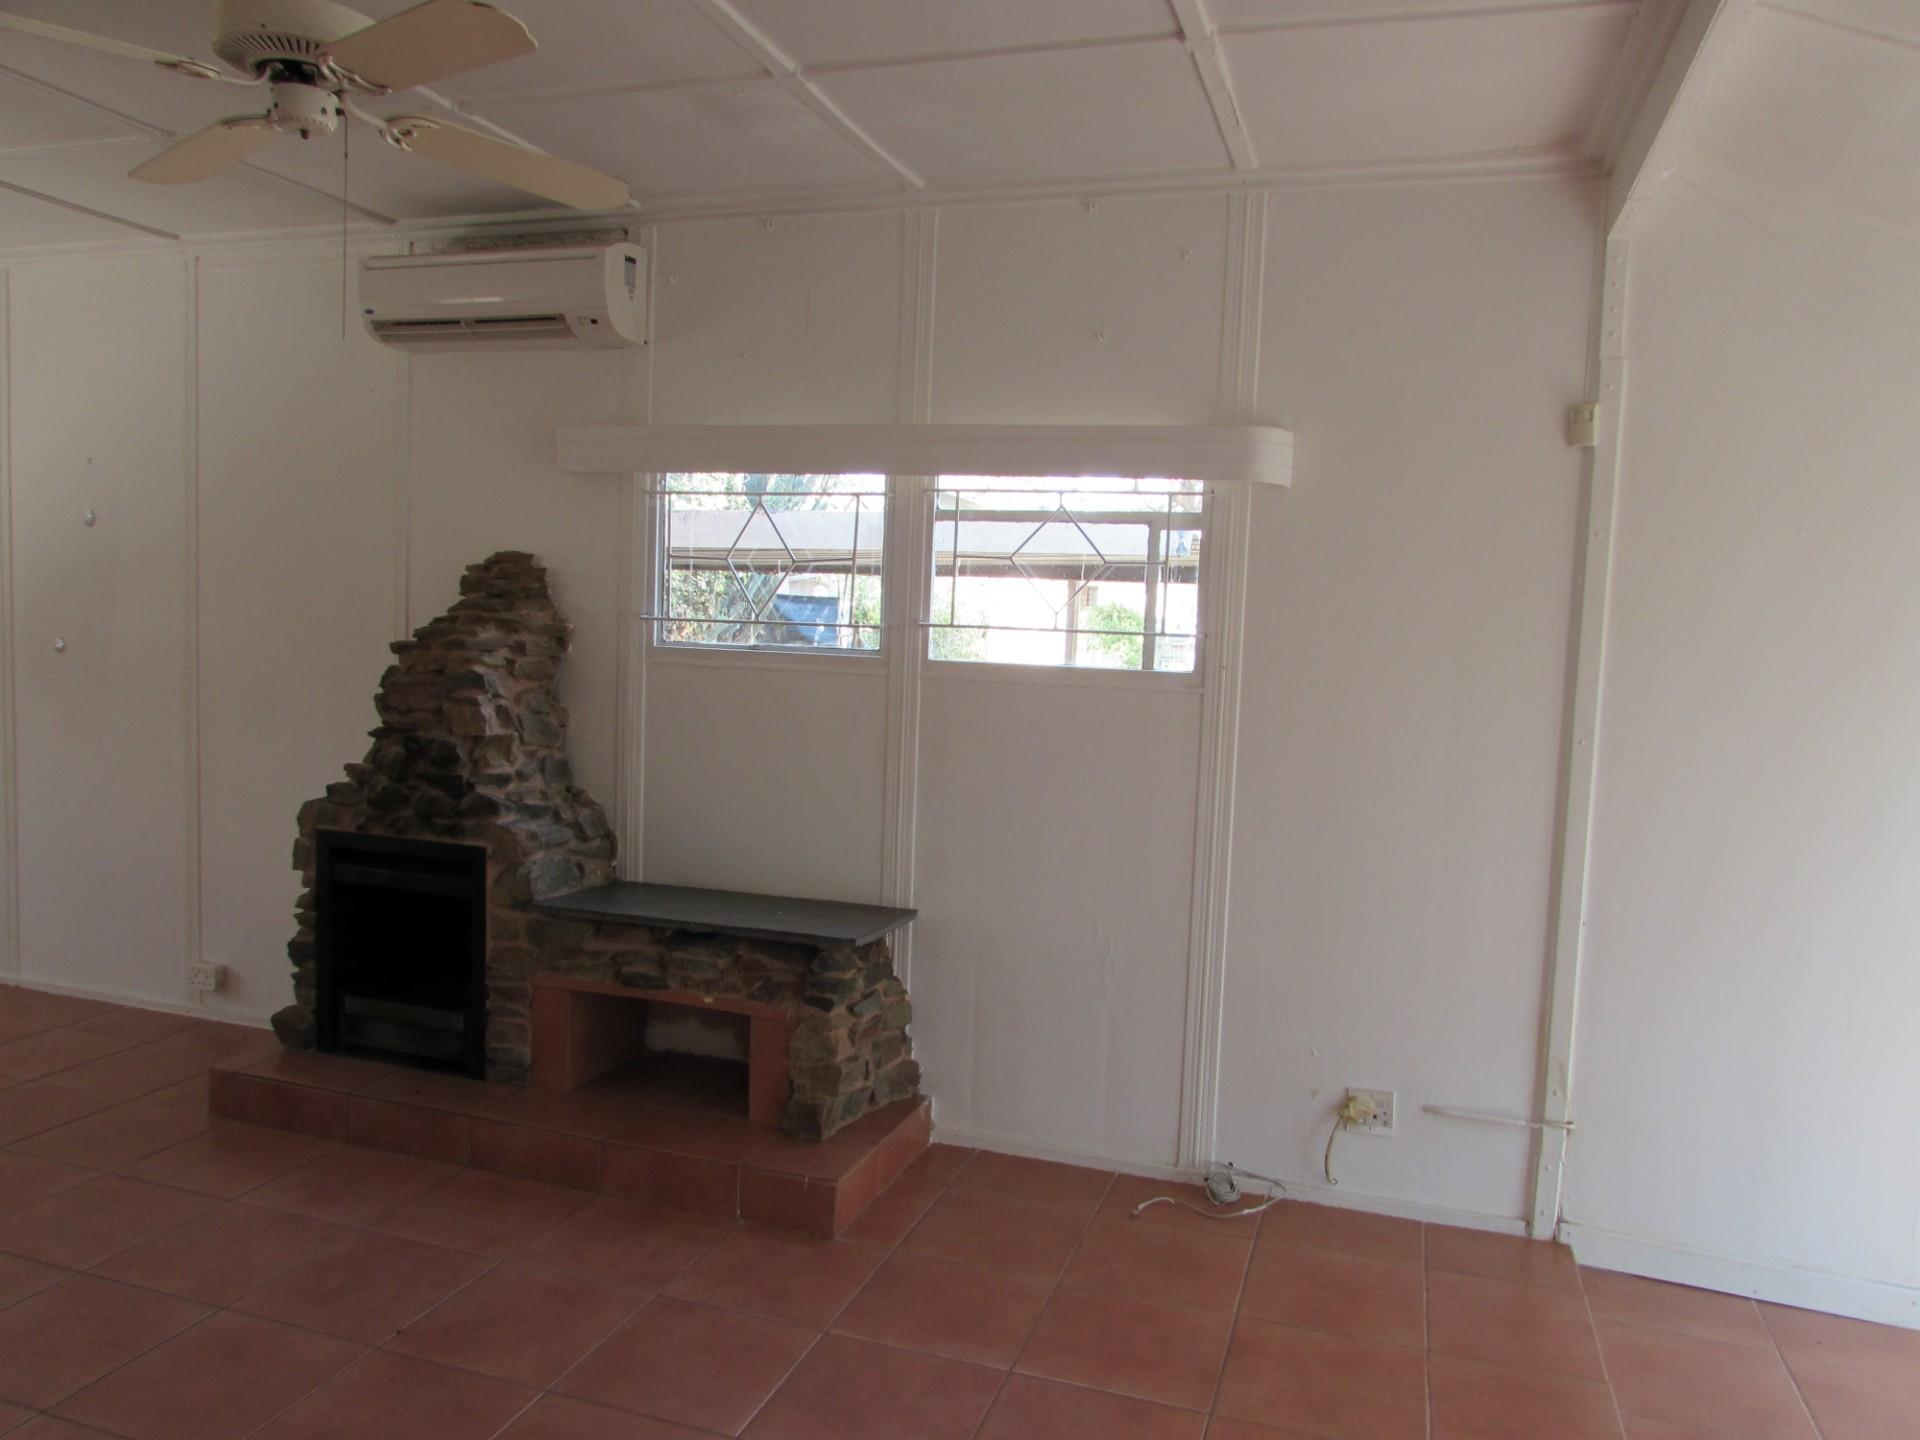 3 Bedroom House For Sale in Gaborone